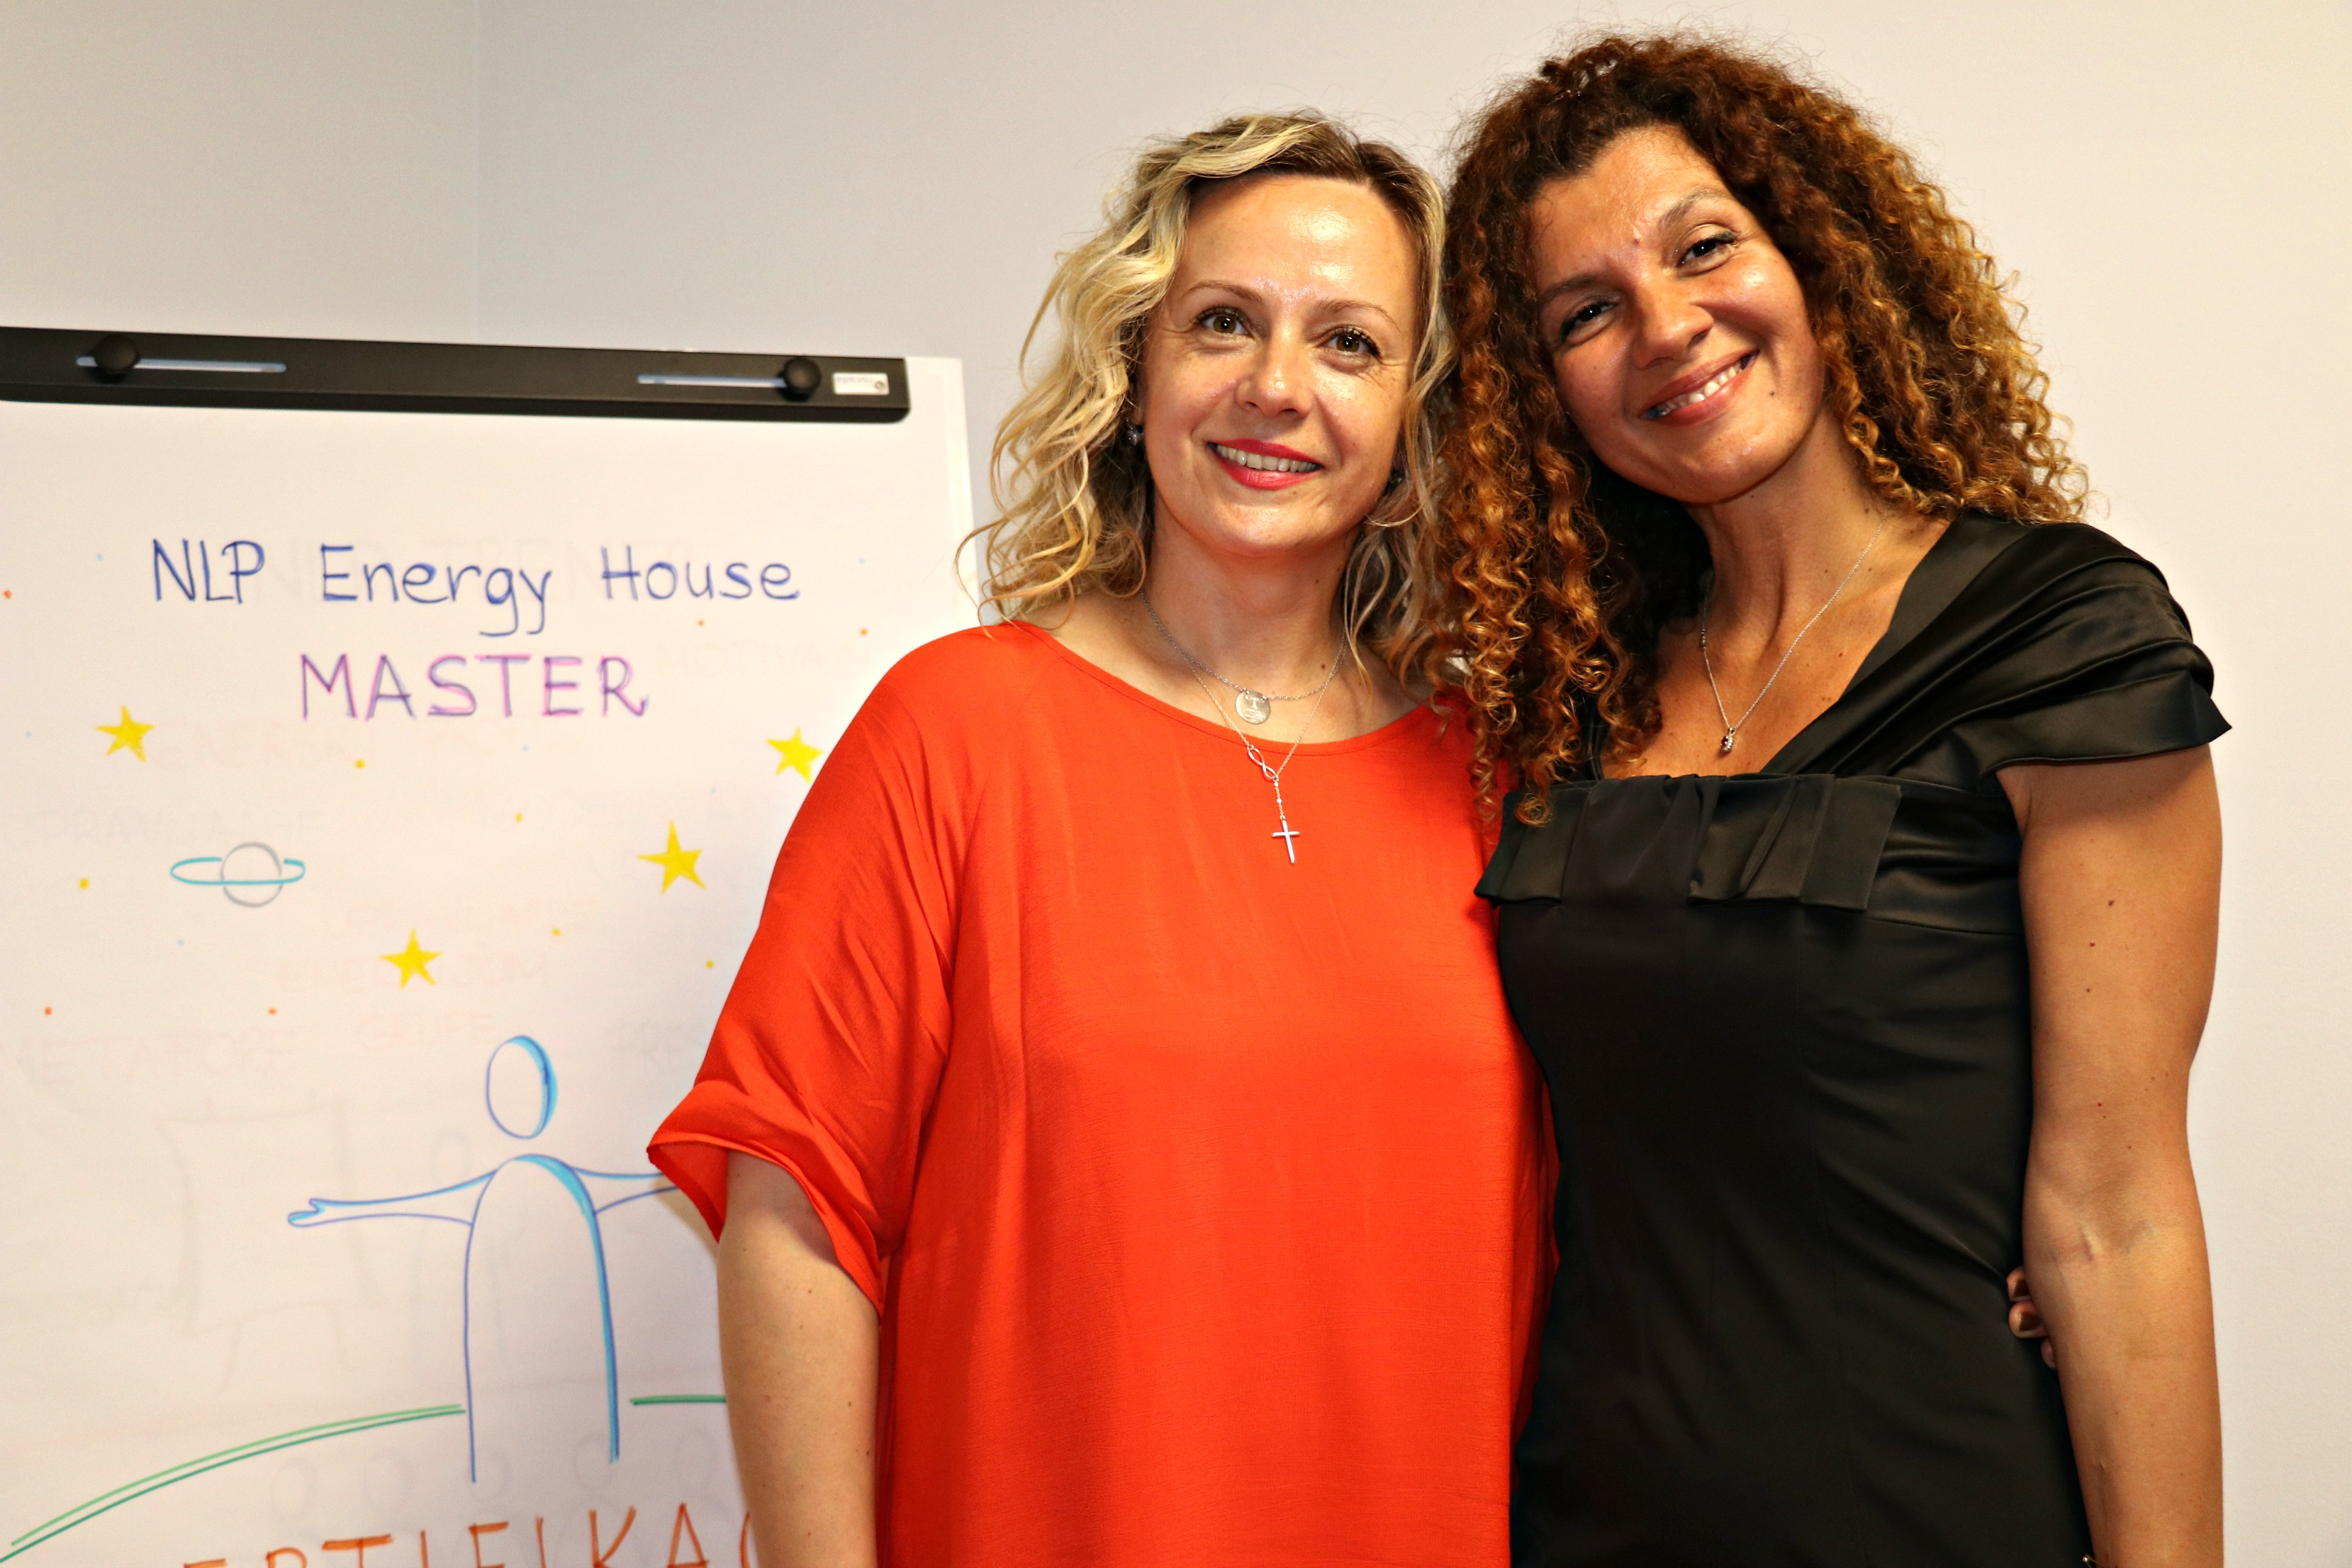 Silvana Stojanovic Louis, NLP Energy House